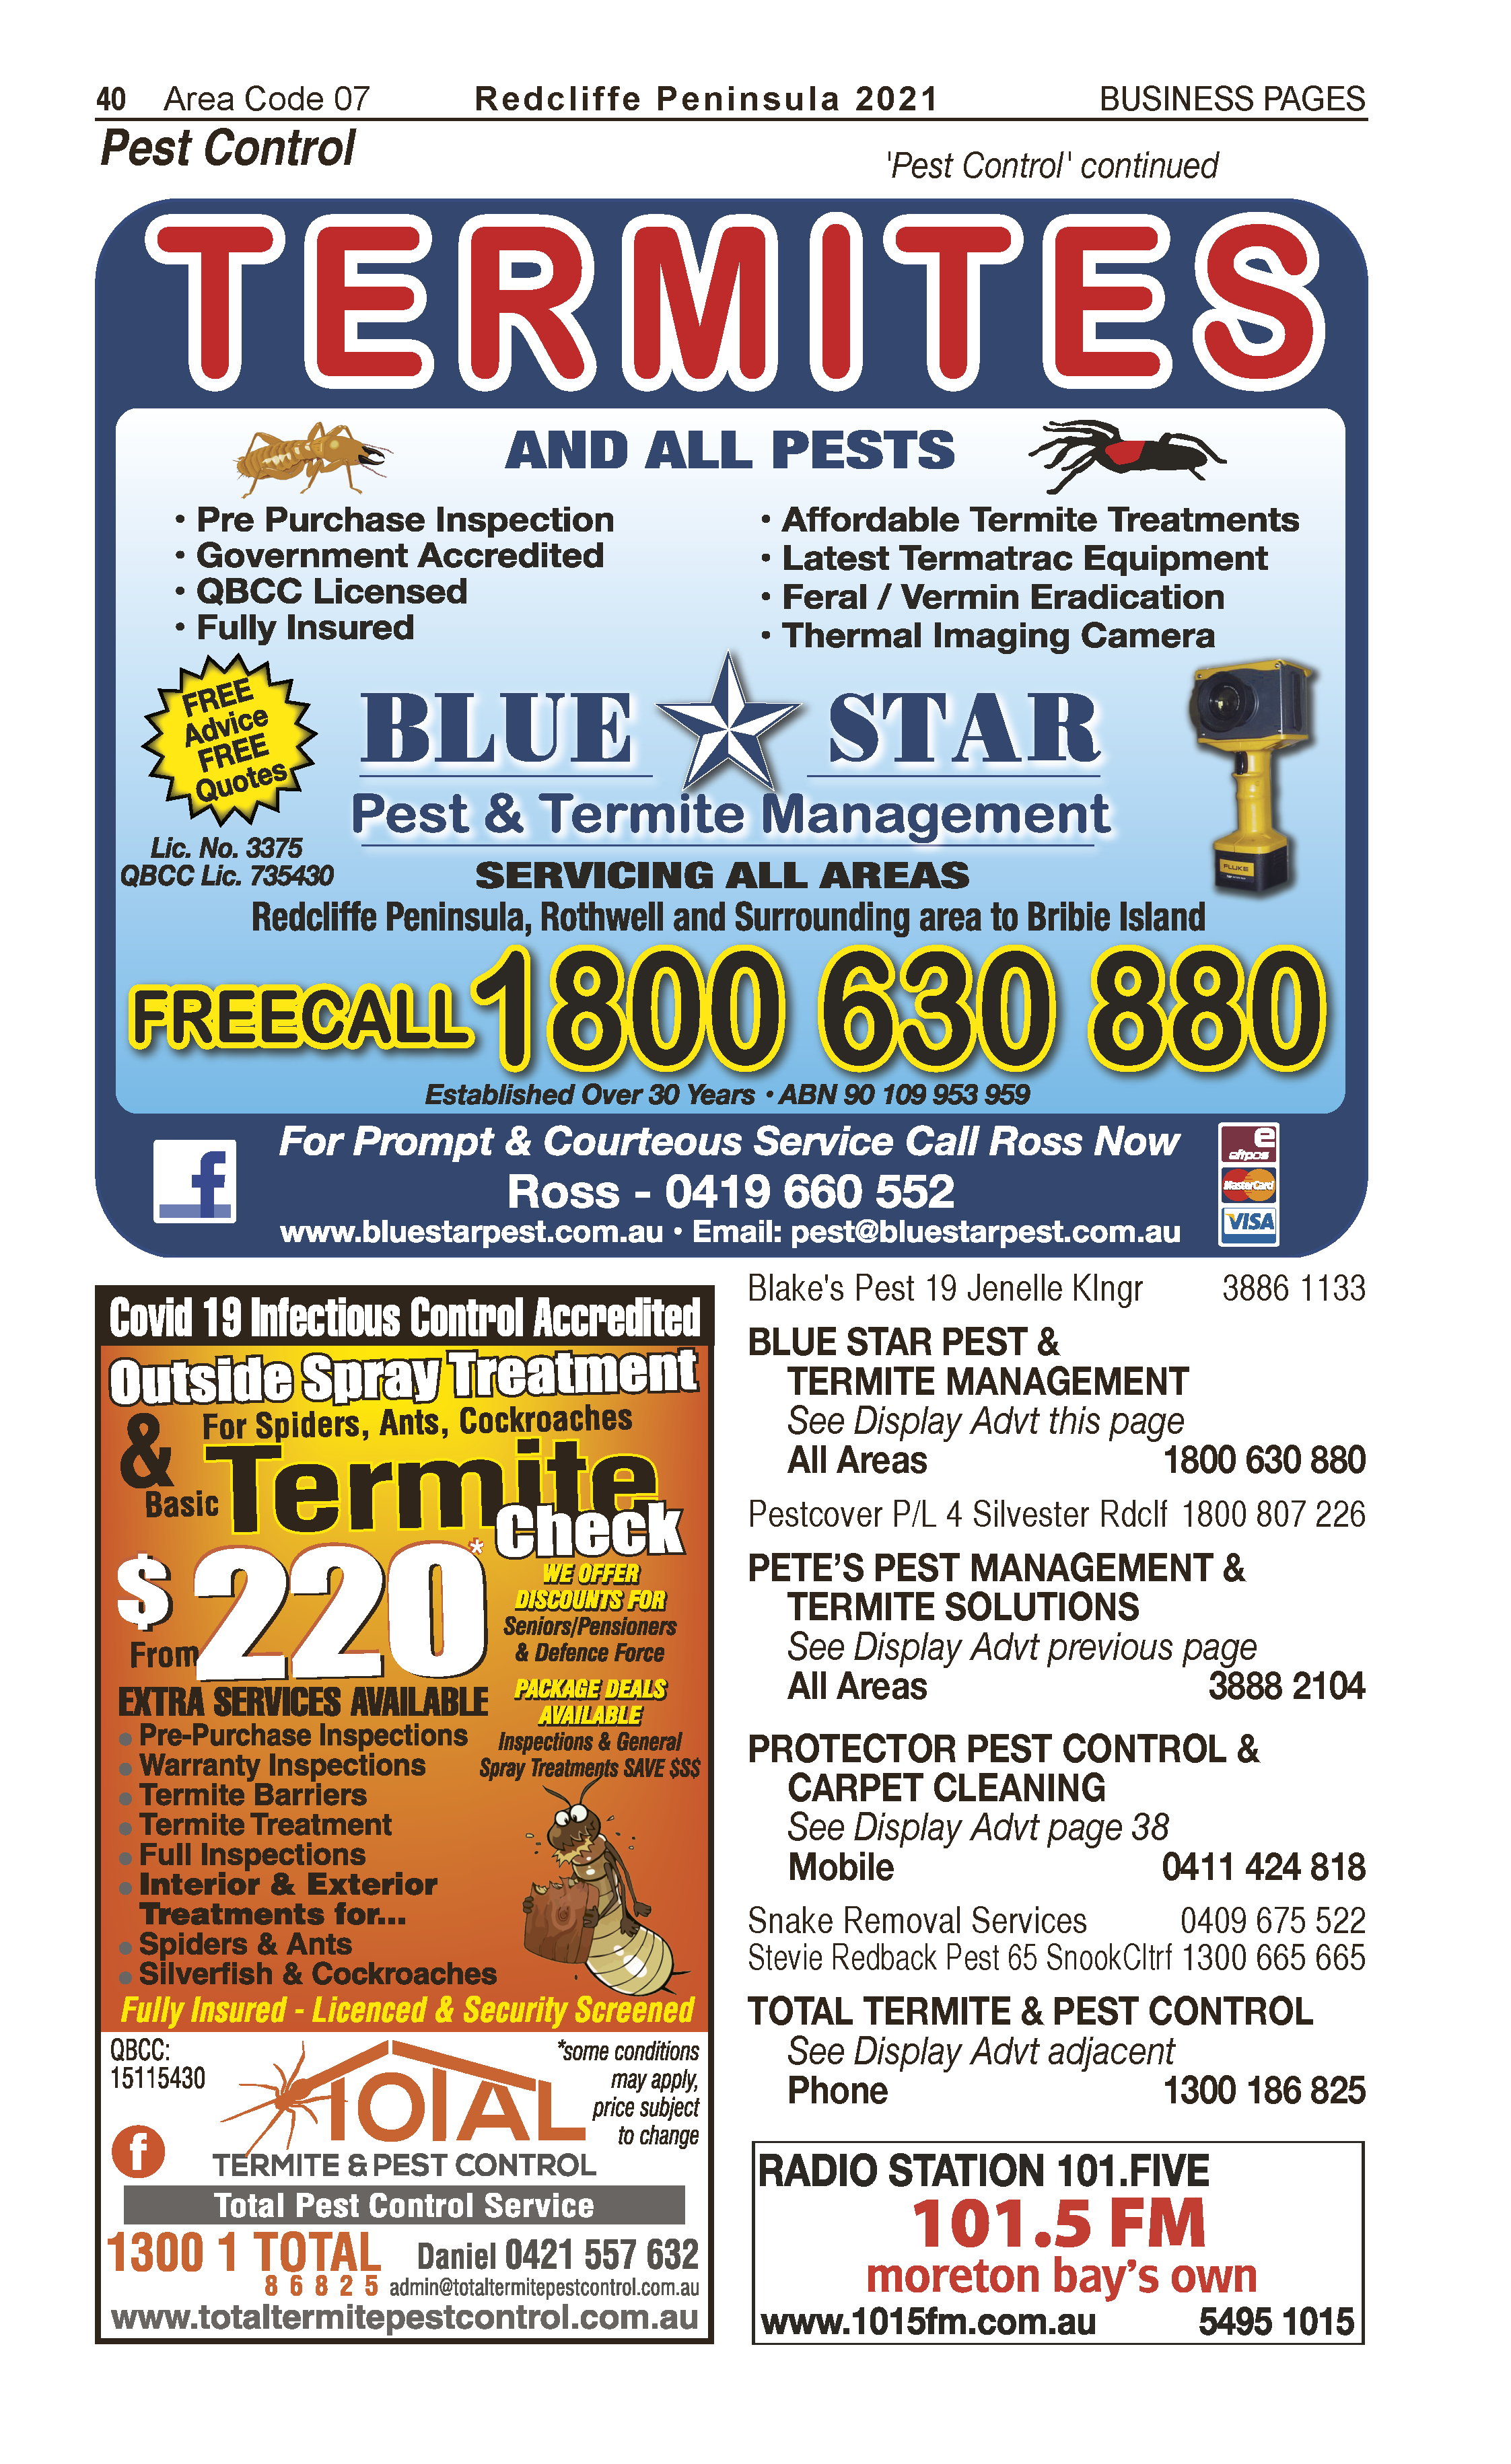 Protector Carpet Cleaning & Pest Control | Upholstery Cleaners in Kippa Ring | PBezy Pocket Books local directories - page 40